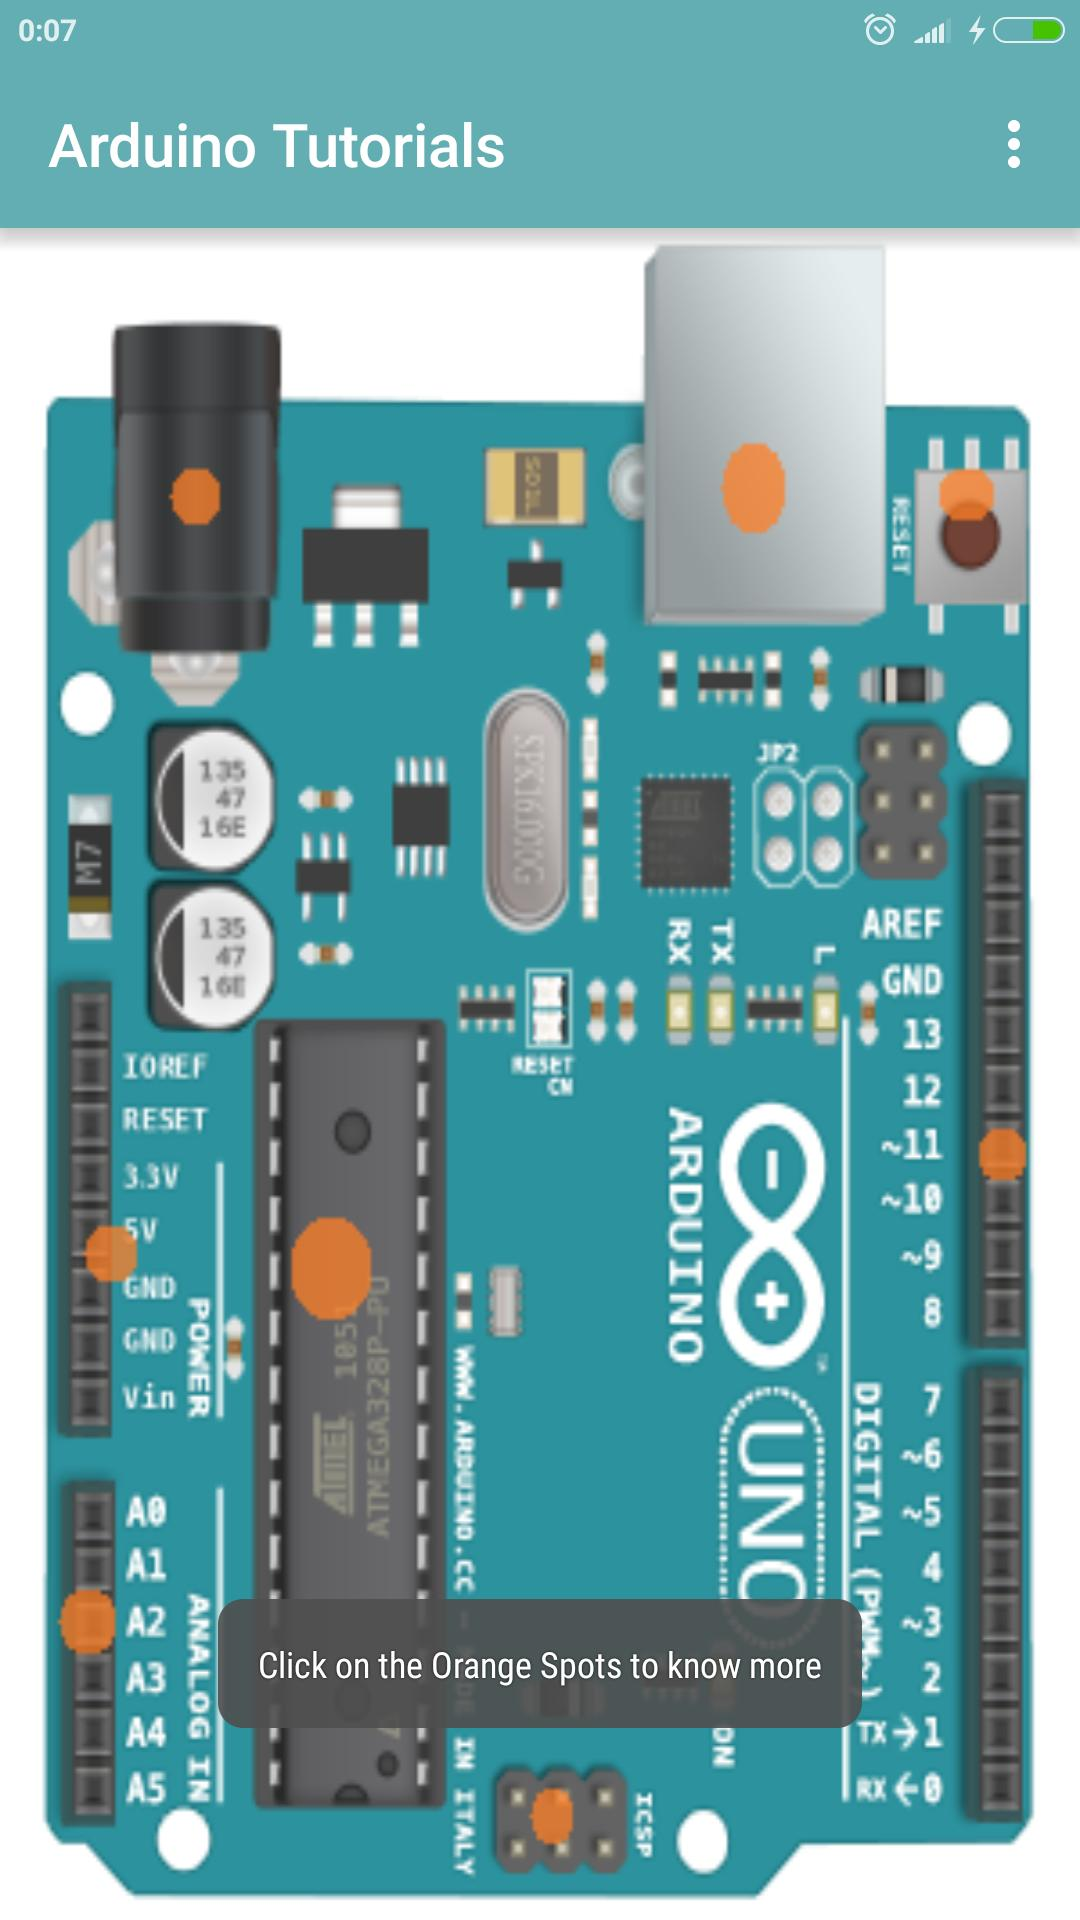 Arduino Tutorials for Android - APK Download